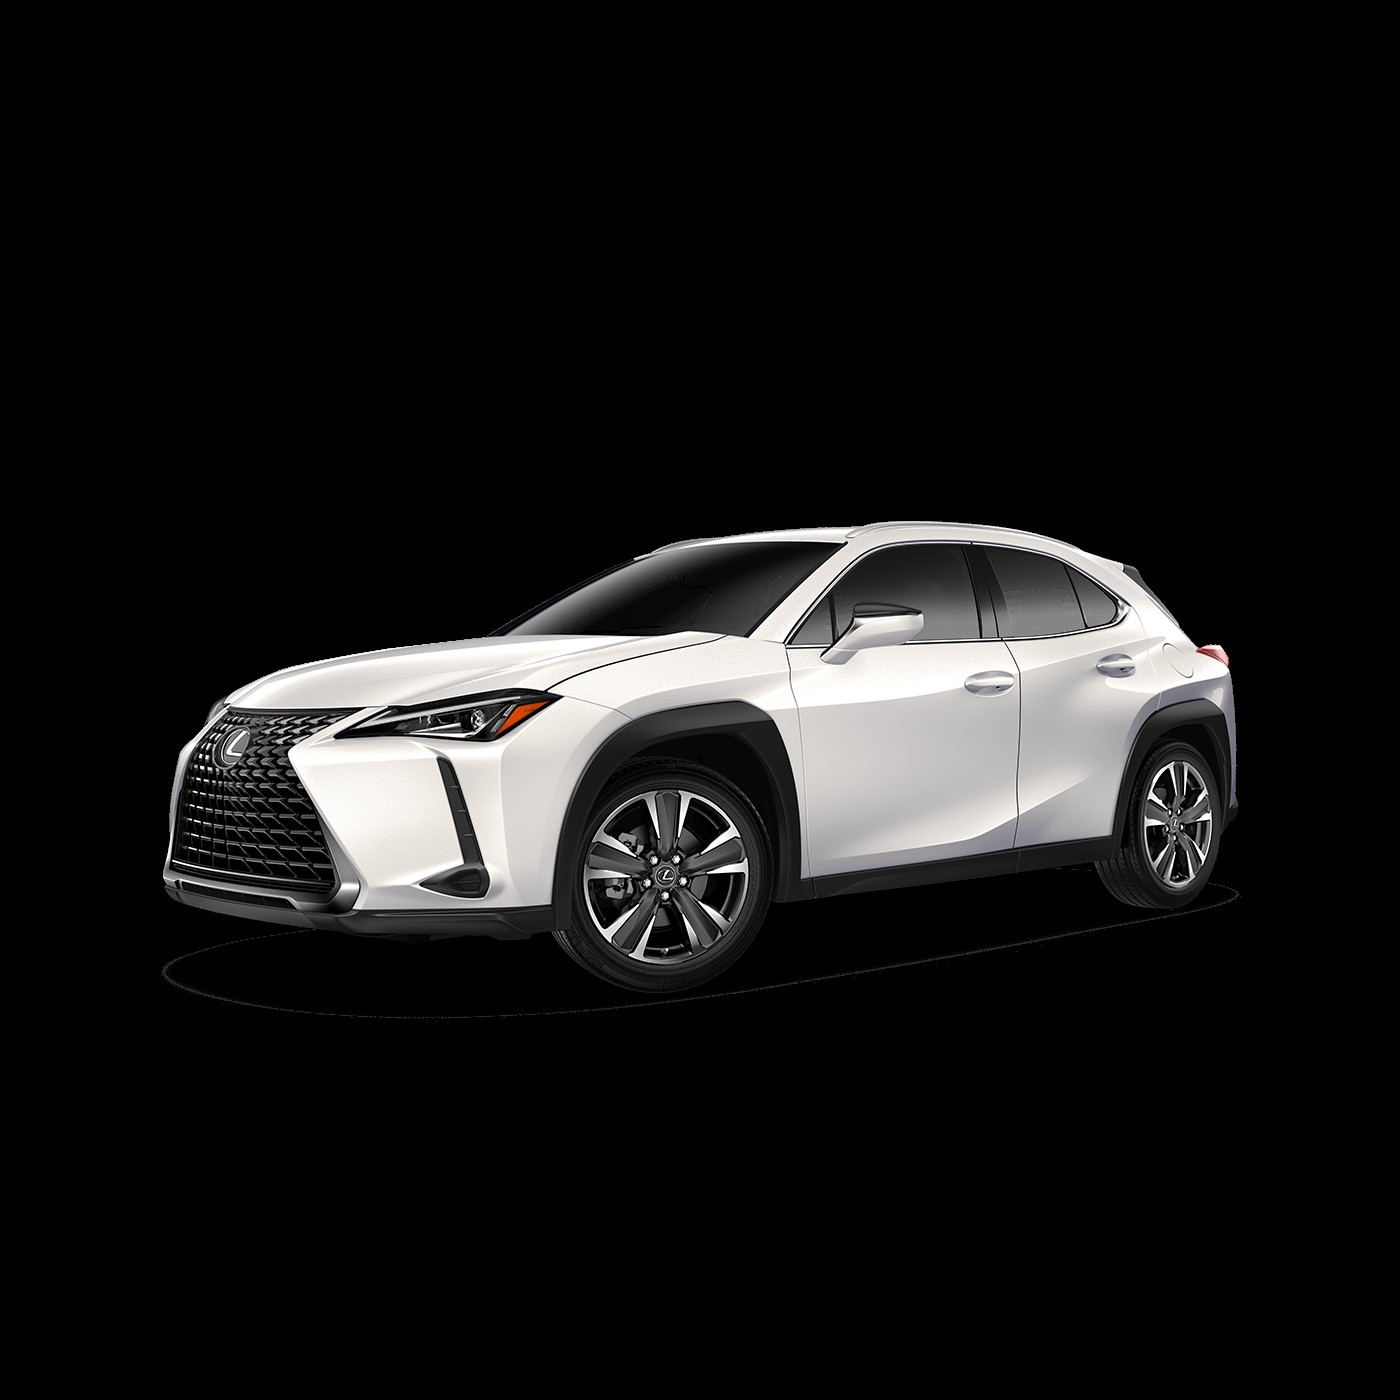 2019 Lexus UX shown in Eminent White Pearl